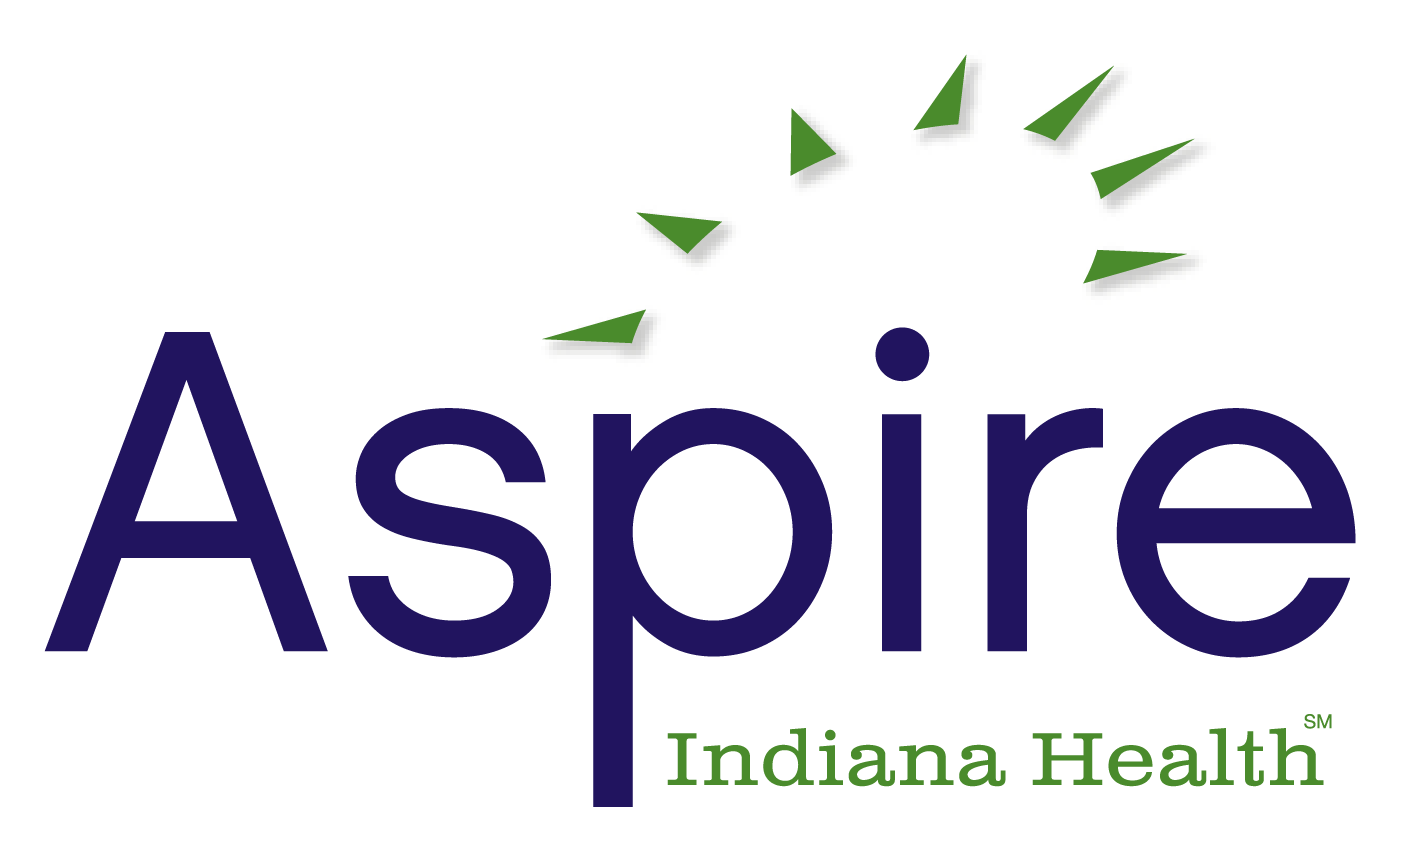 Aspire Indiana Health